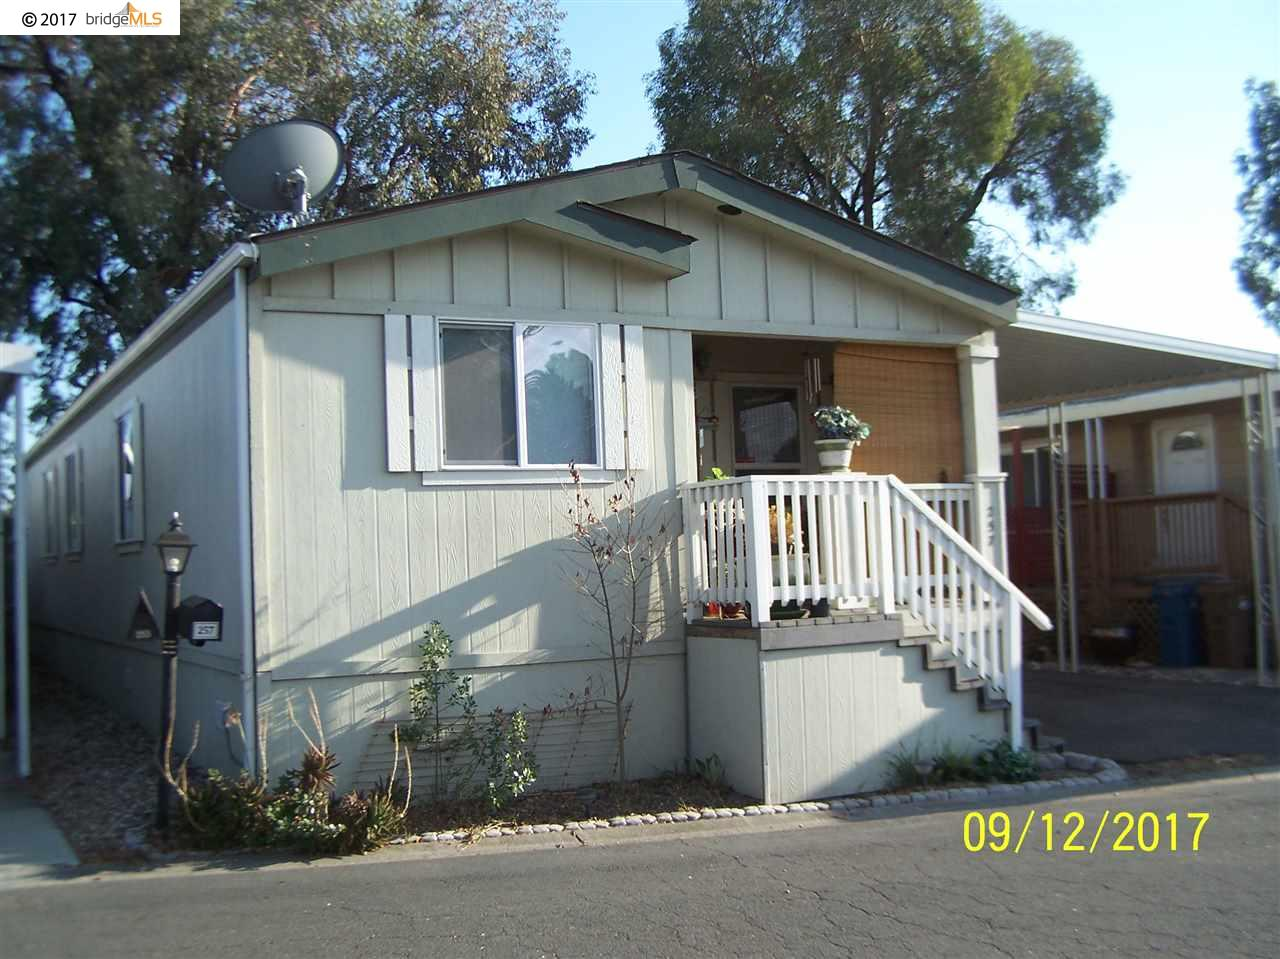 Single Family Home for Sale at 257 Kaimu Pacheco, California 94553 United States